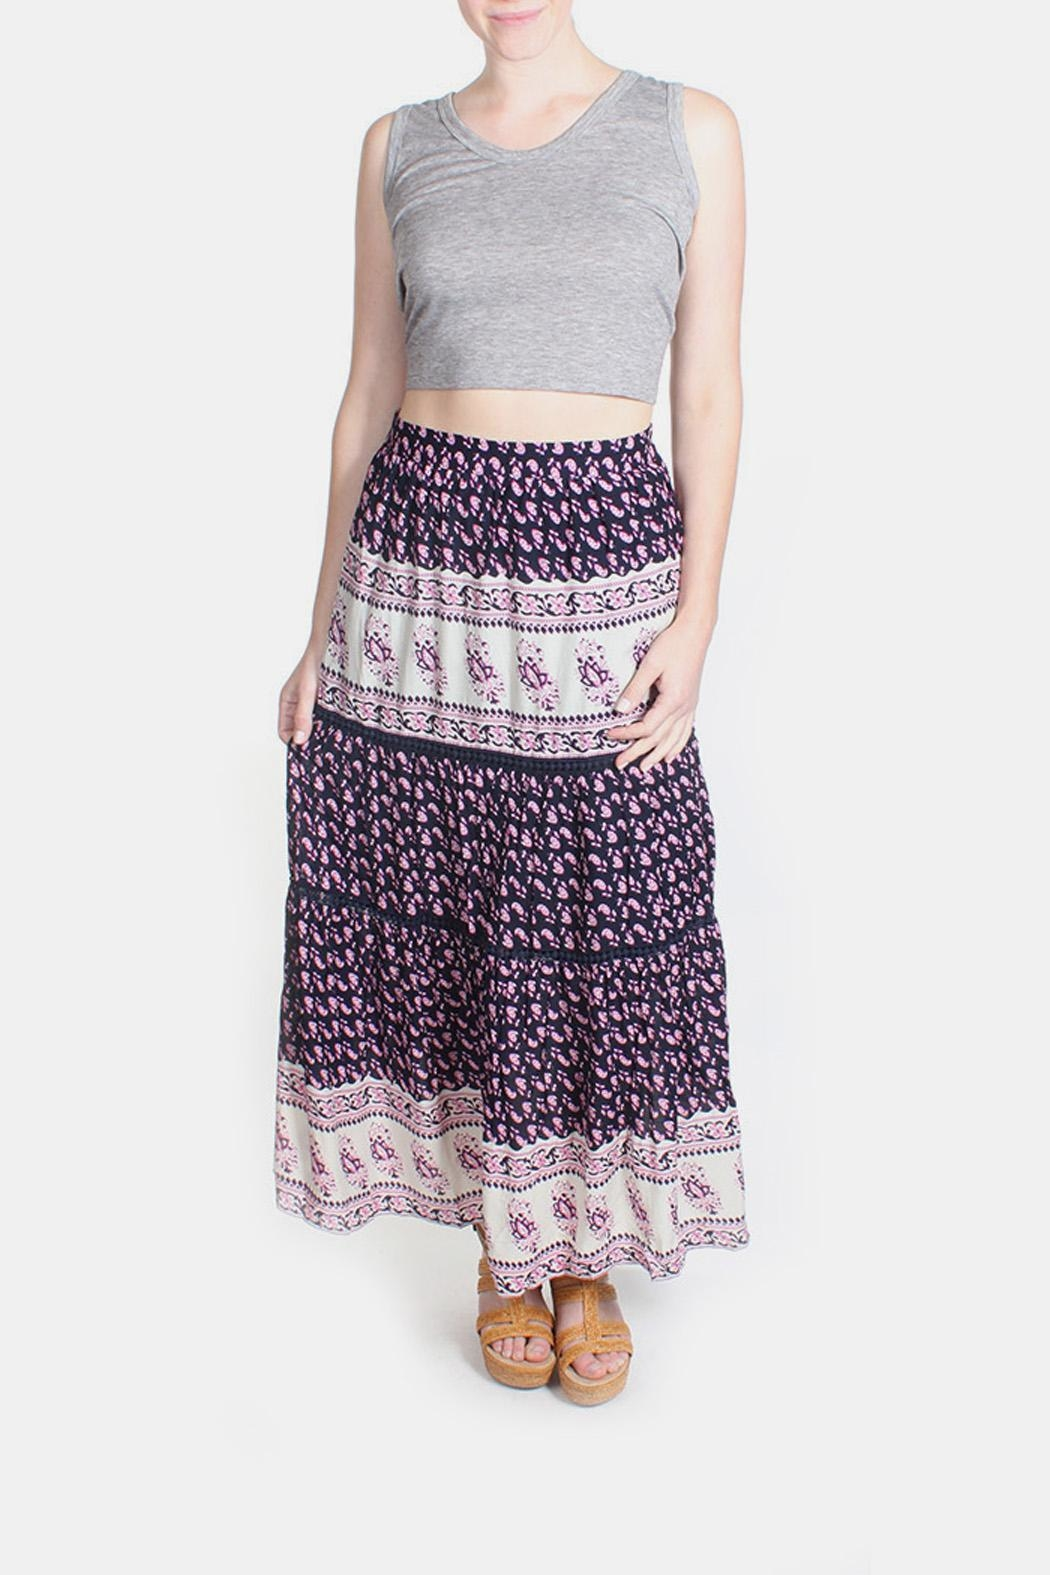 Skies Are Blue Pink Patterned Maxi Skirt - Main Image